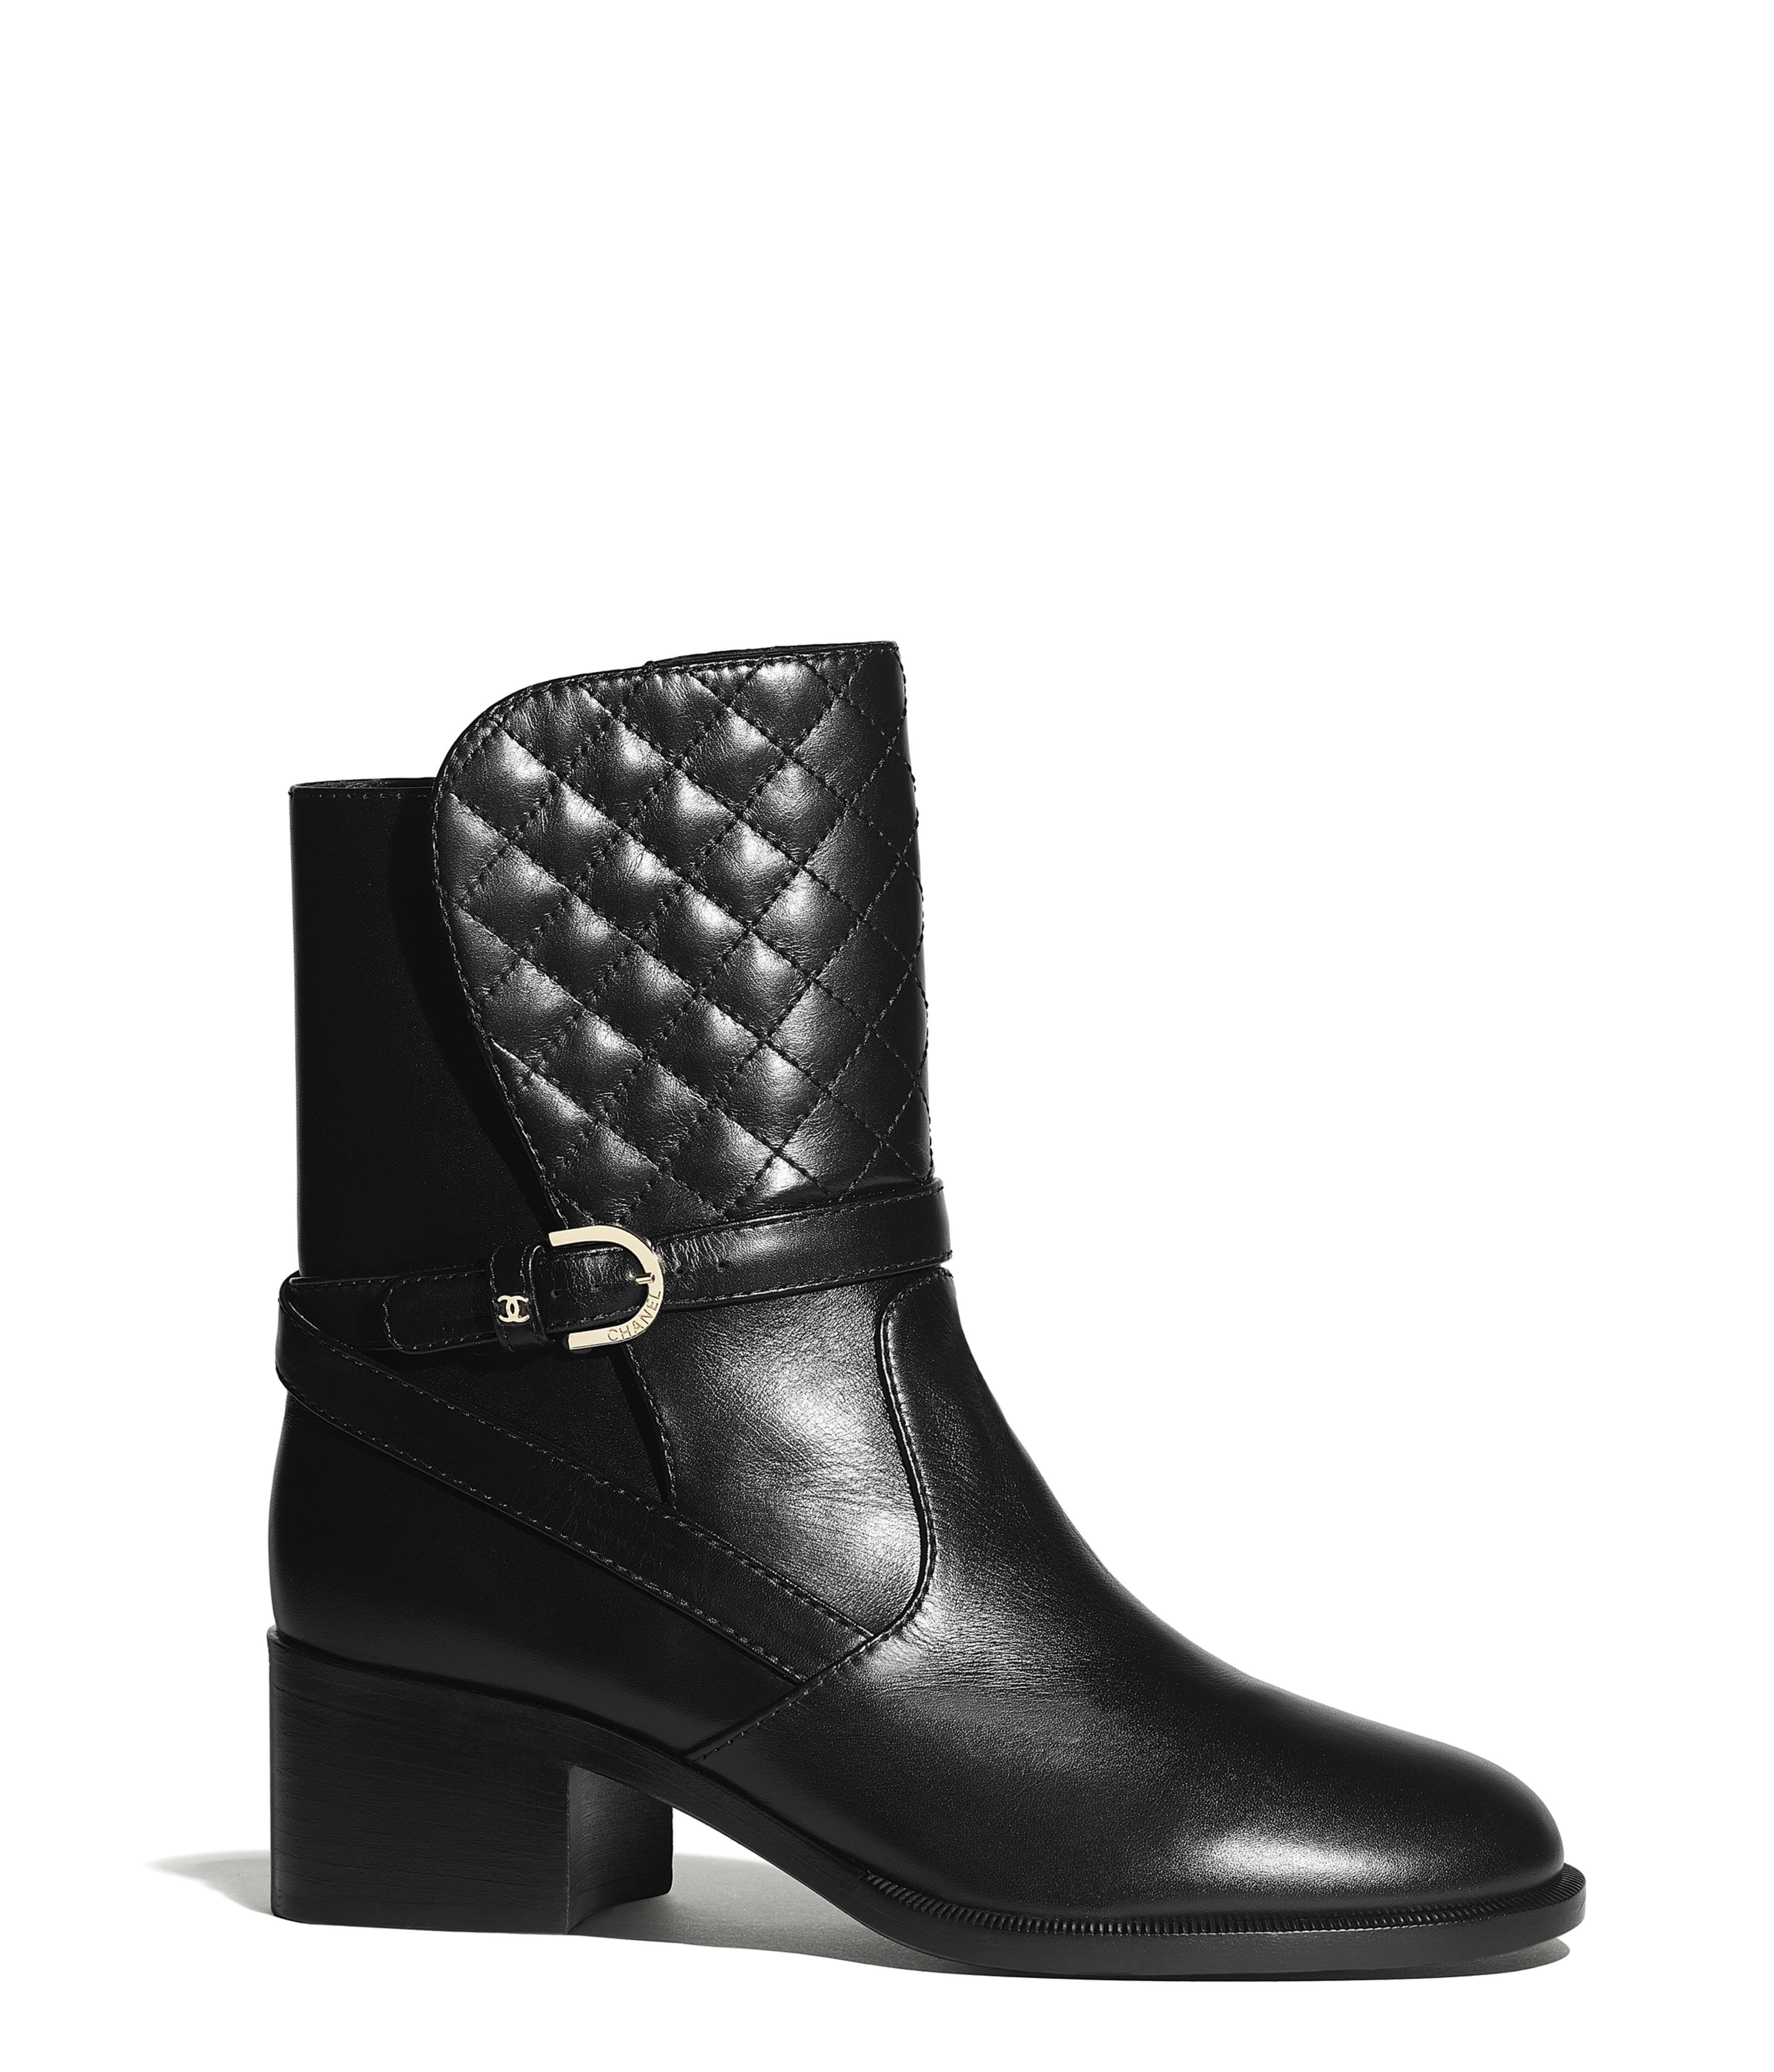 1b65519830 Short Boots - Shoes   CHANEL